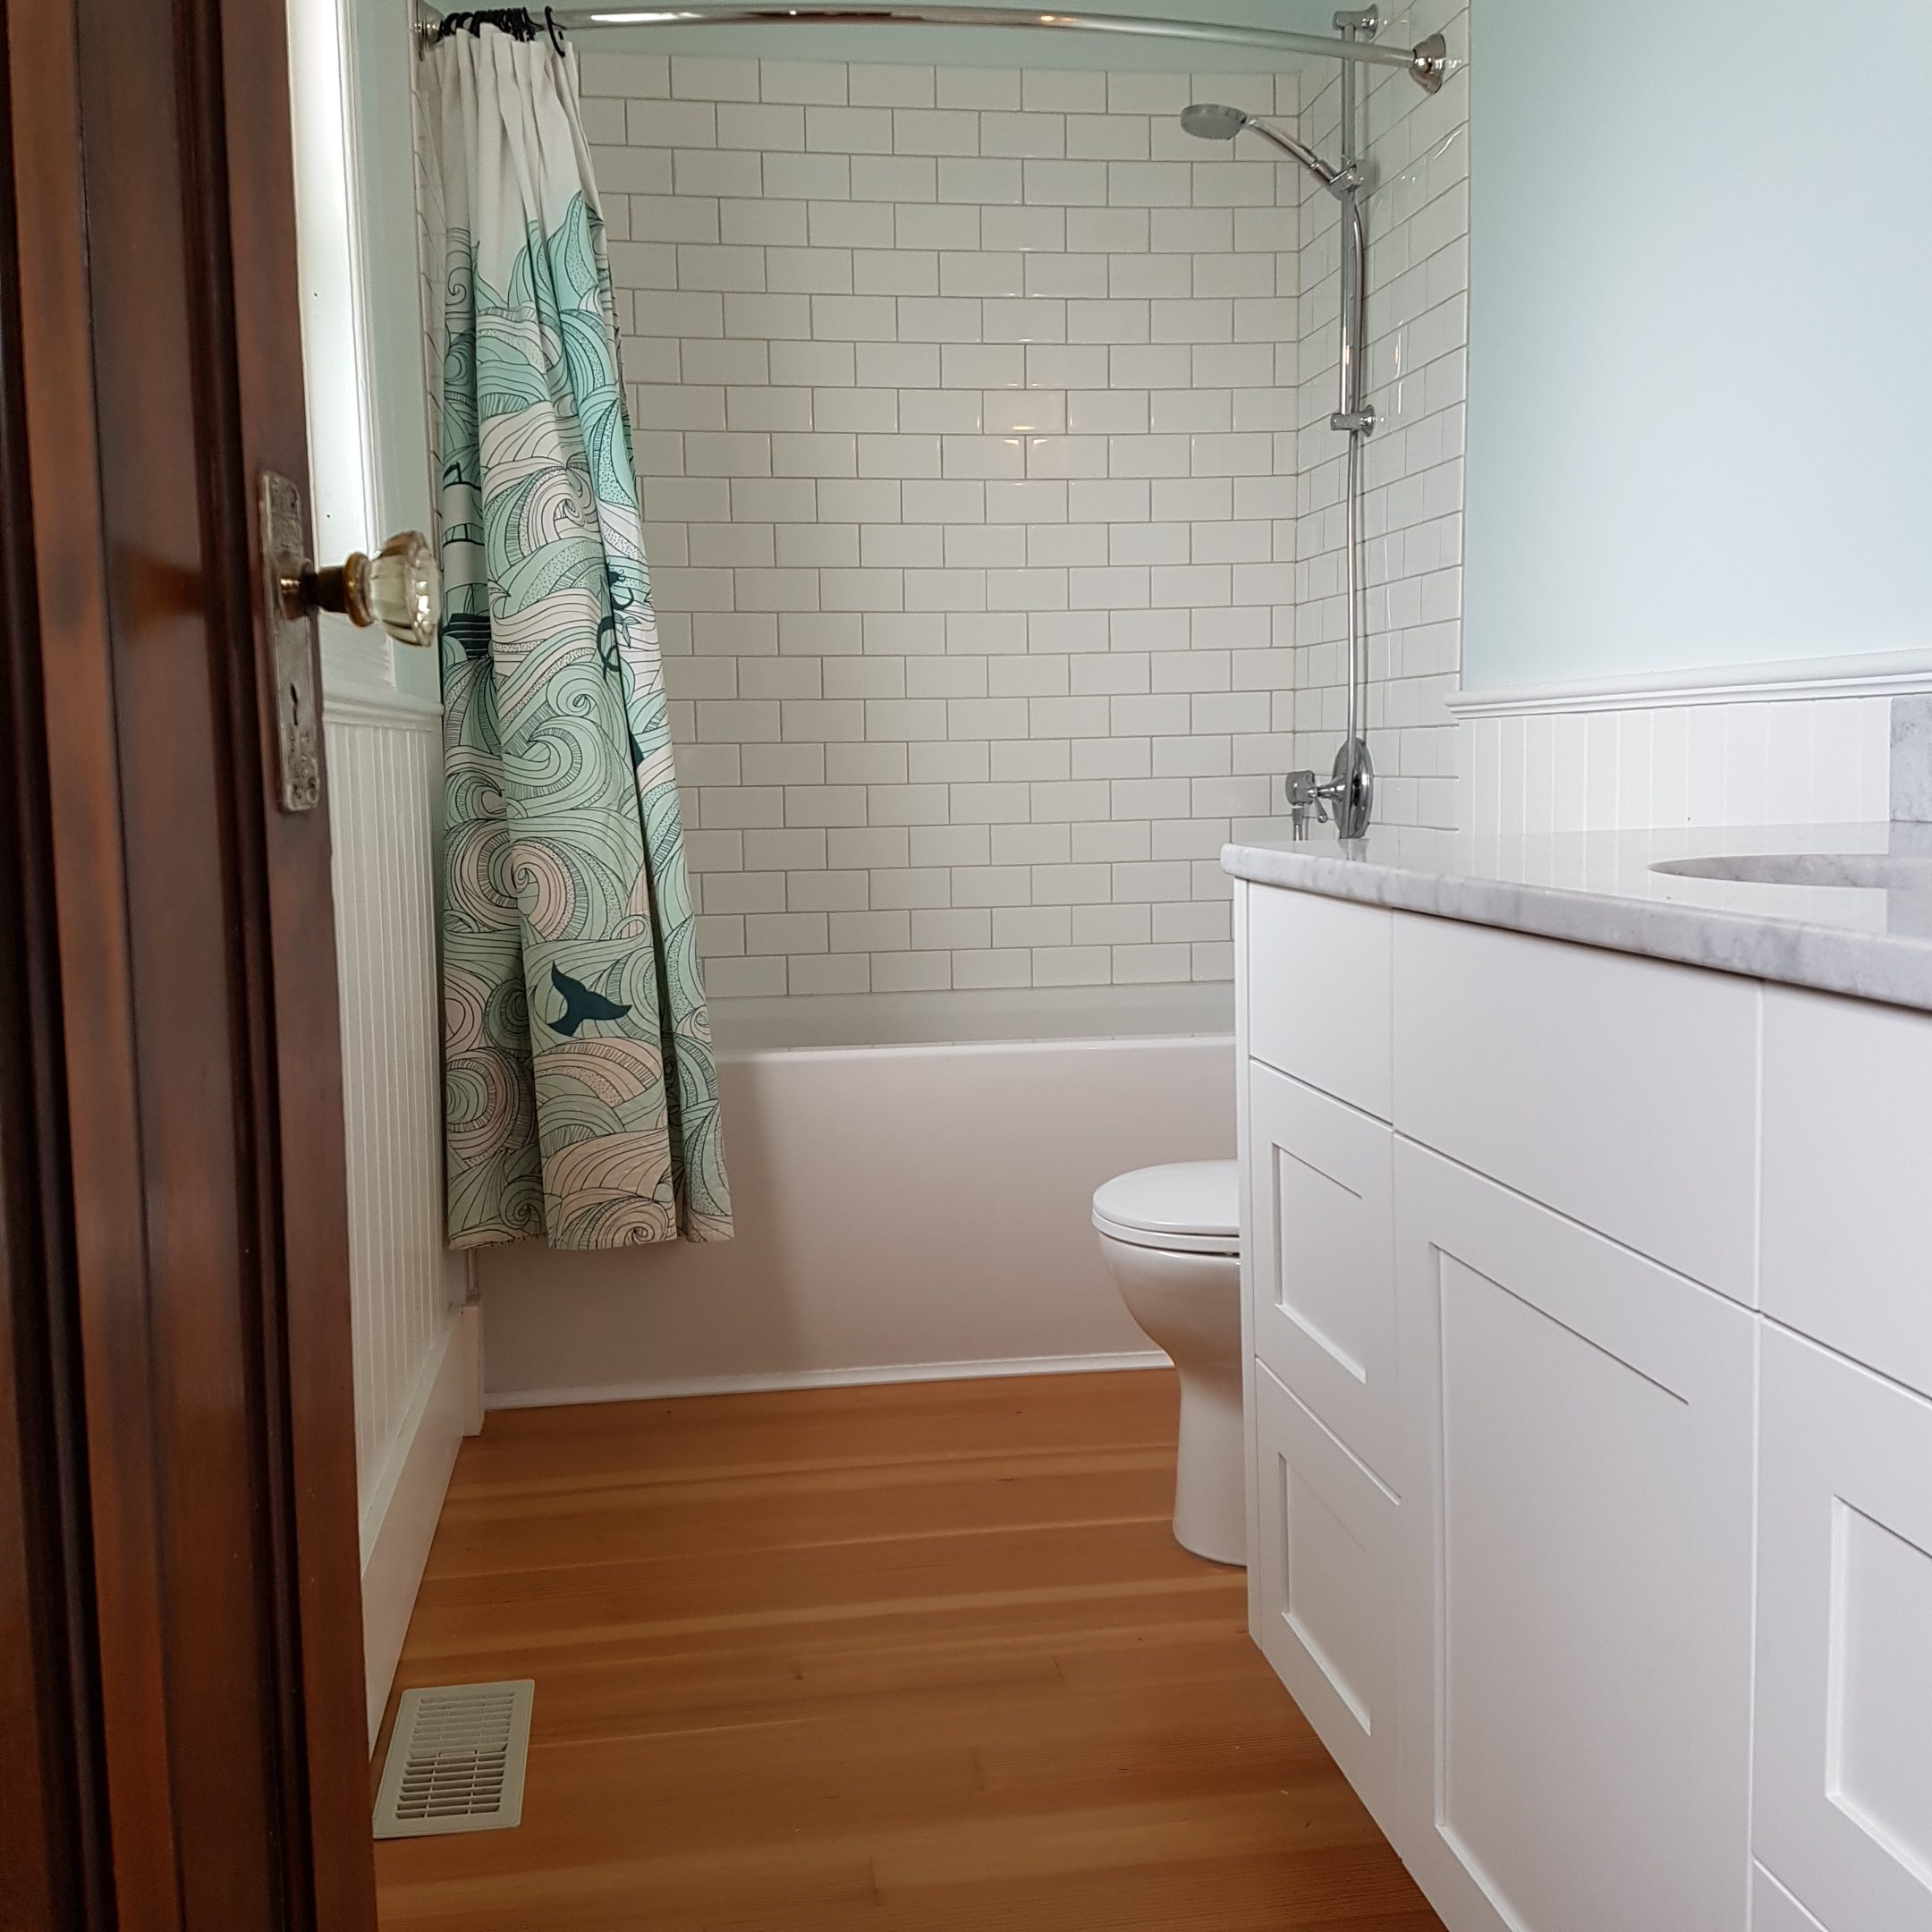 Pacific Bathrooms | Bathroom Renovations Victoria BC